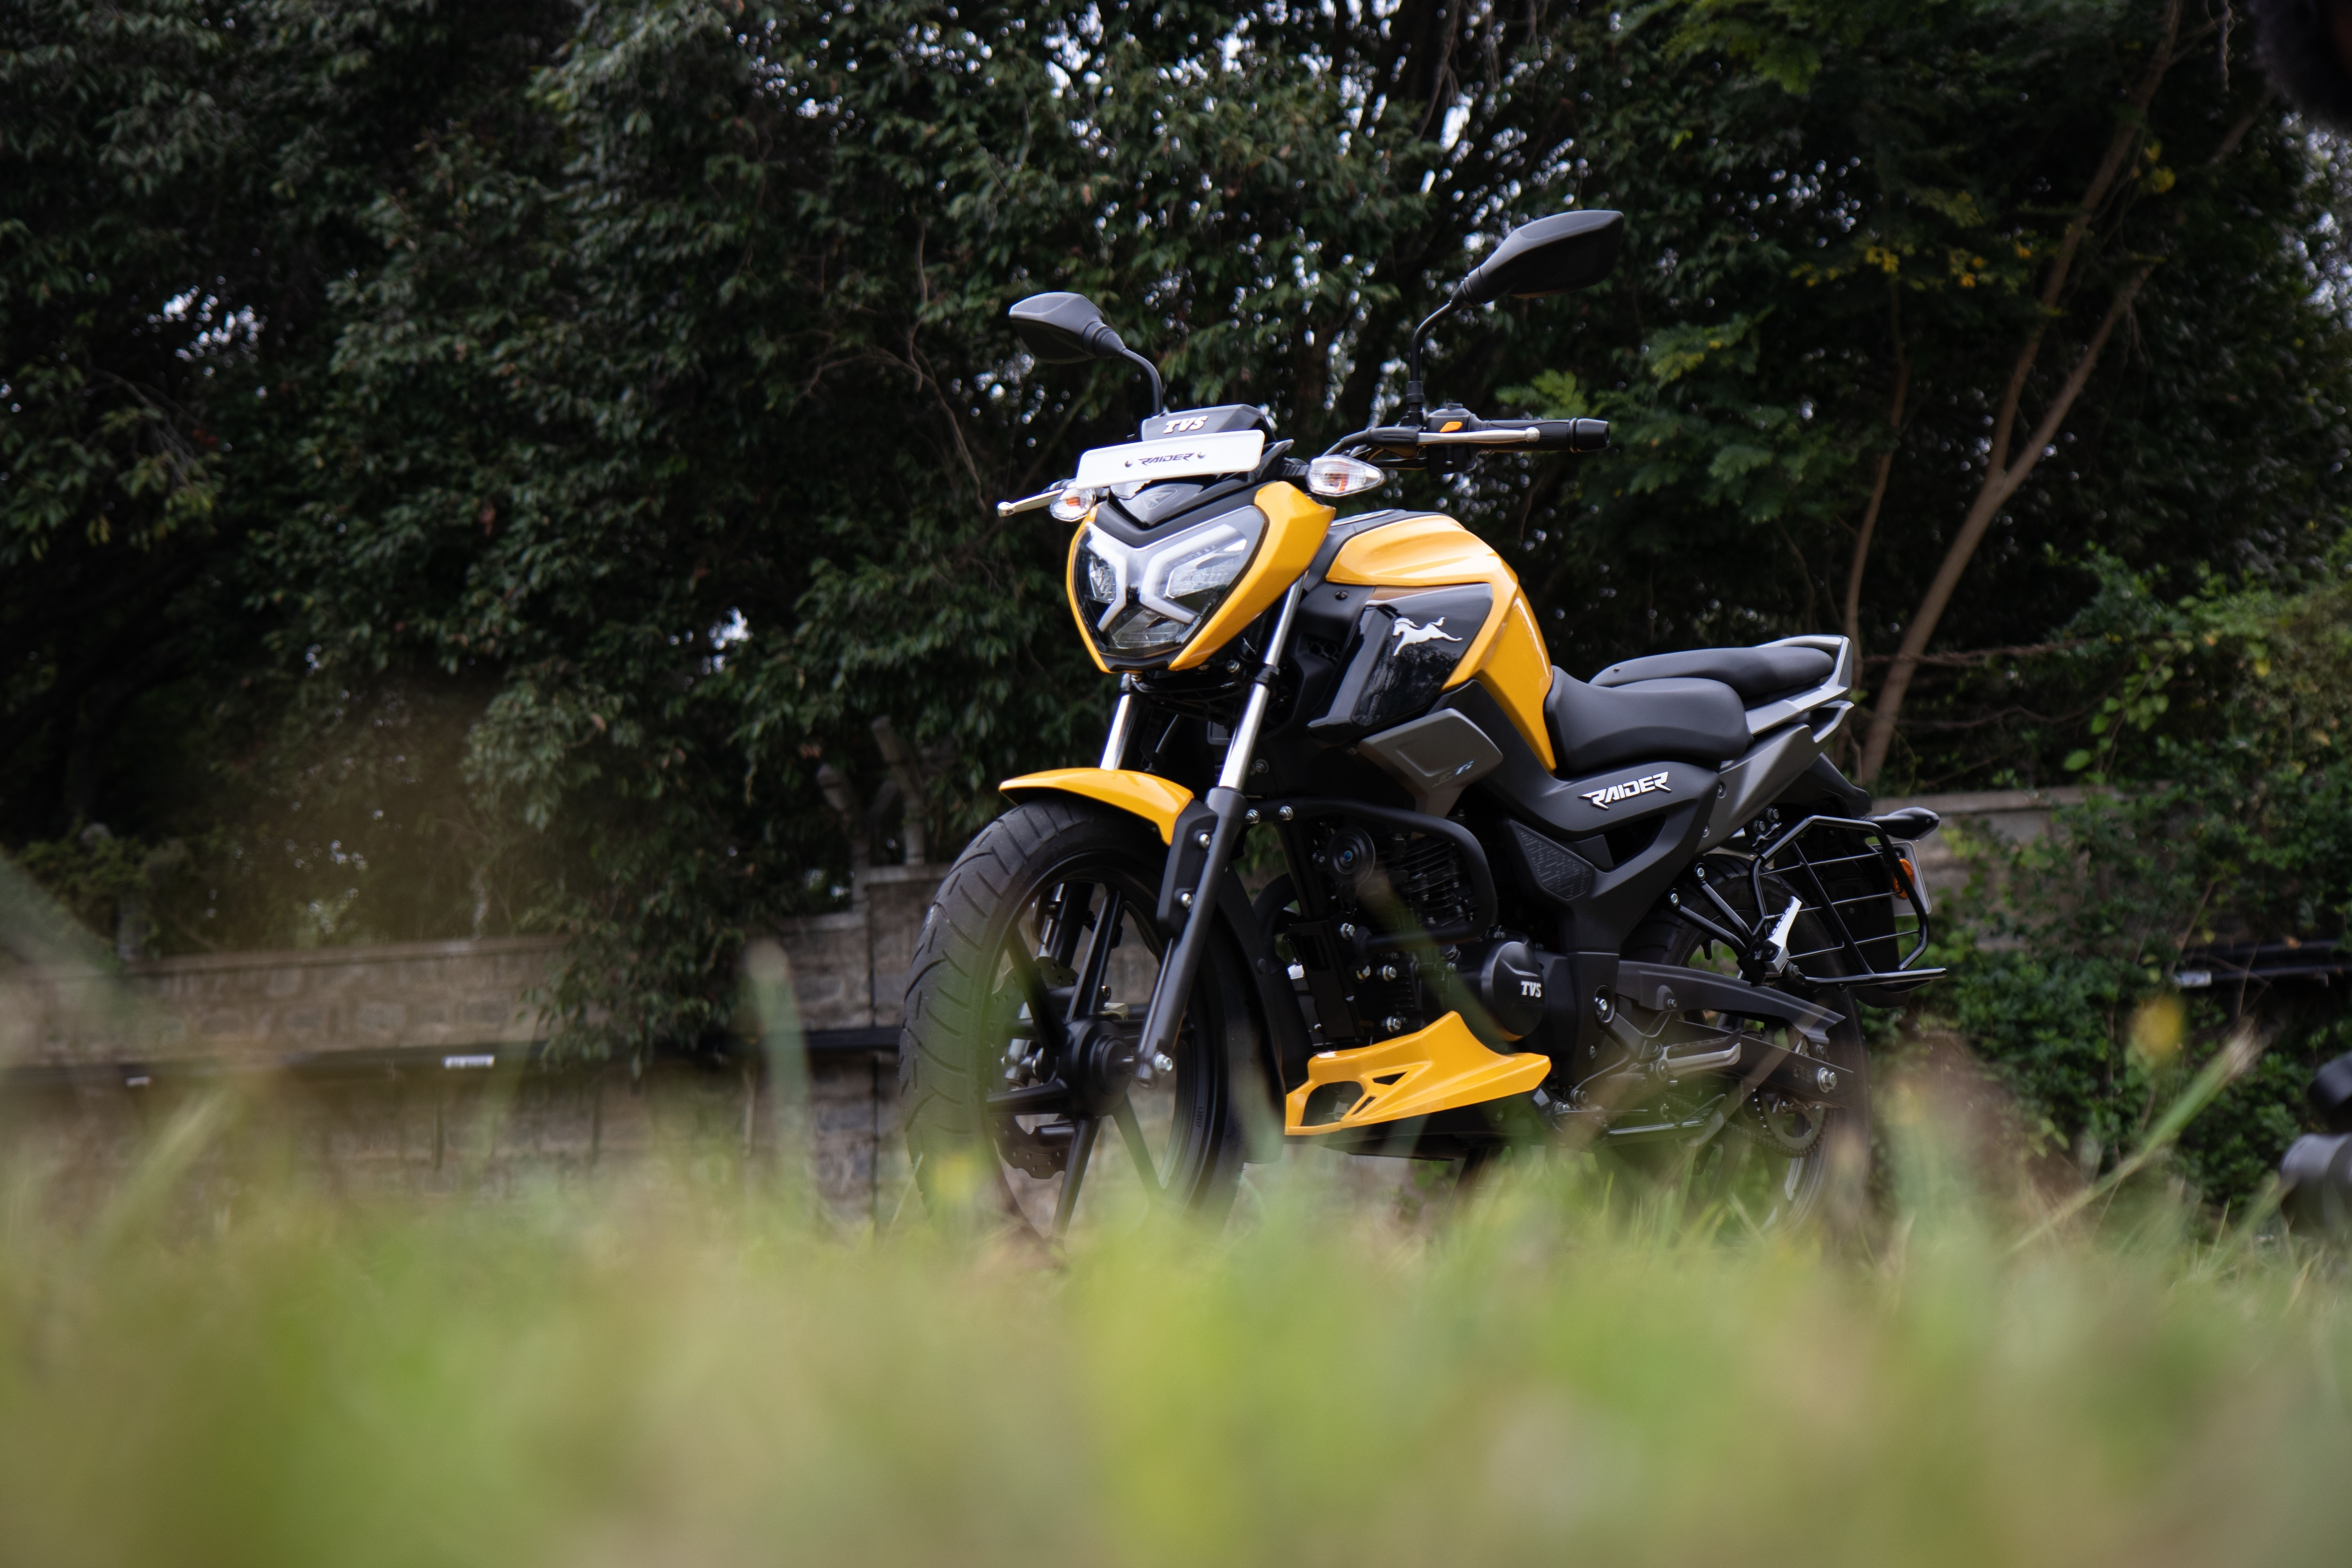 The TVS Raider is a very uniquely positioned product that appears to be a sportier offering but not at the cost of burning a hole in your pocket.